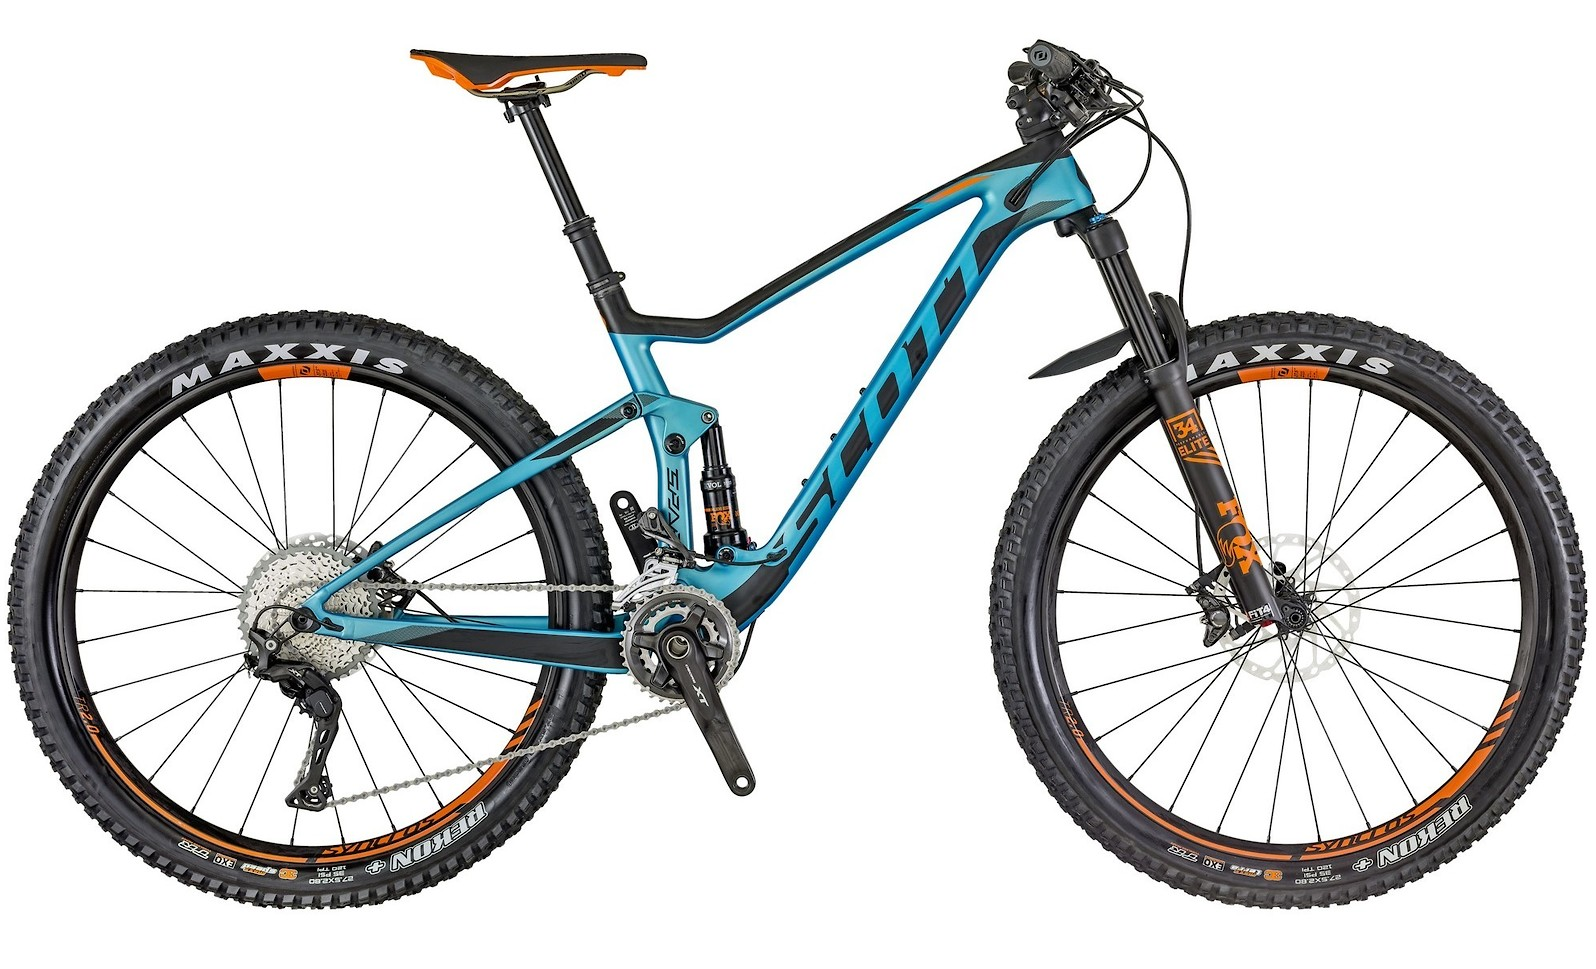 730efa11232 2018 Scott Spark 710 Bike - Reviews, Comparisons, Specs - Mountain ...